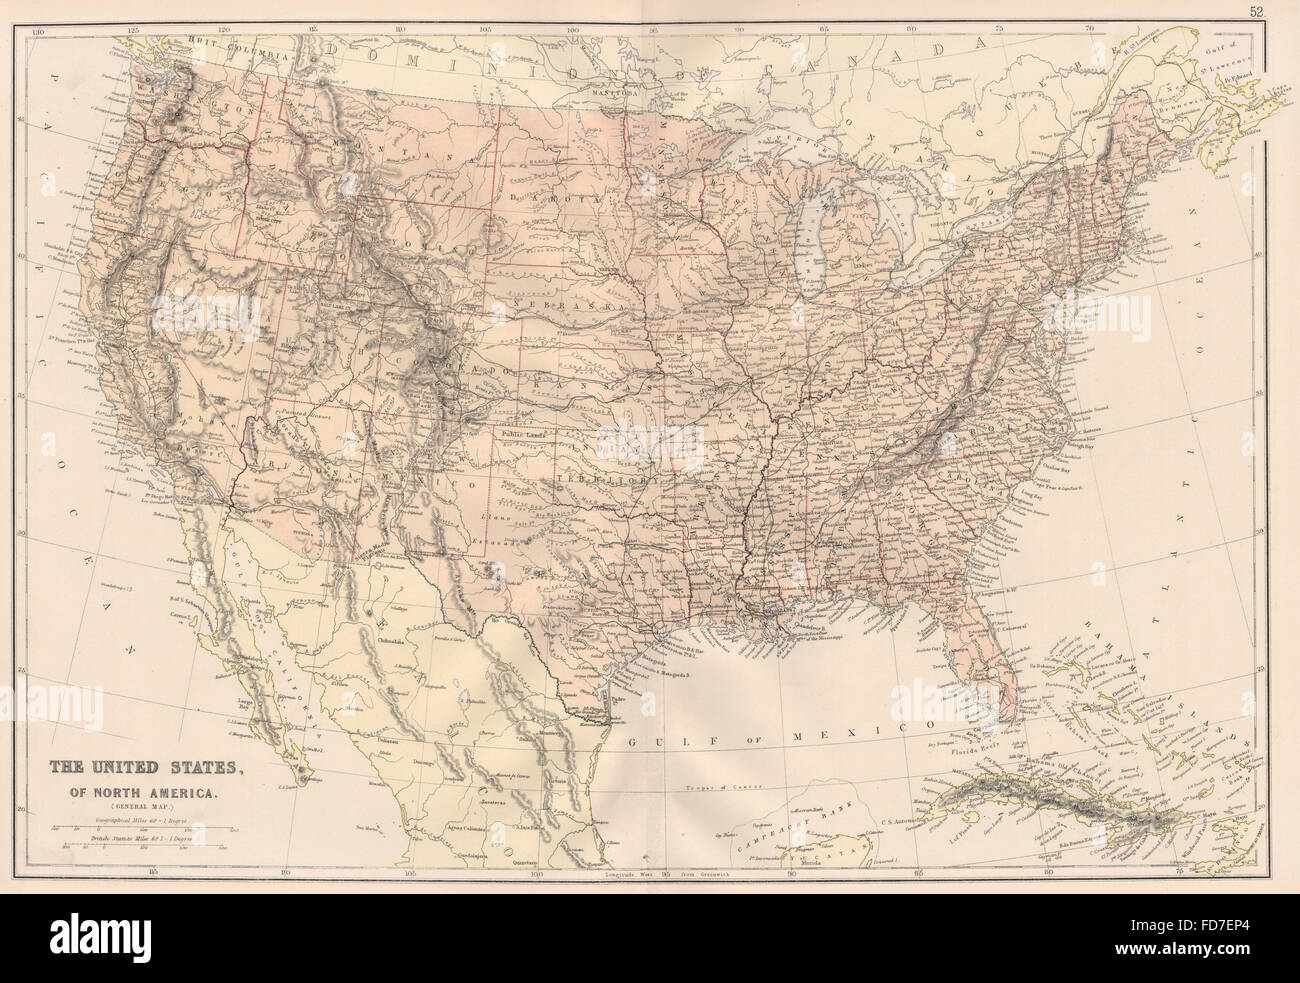 Territory Maps Stock Photos & Territory Maps Stock Images - Page 2 ...